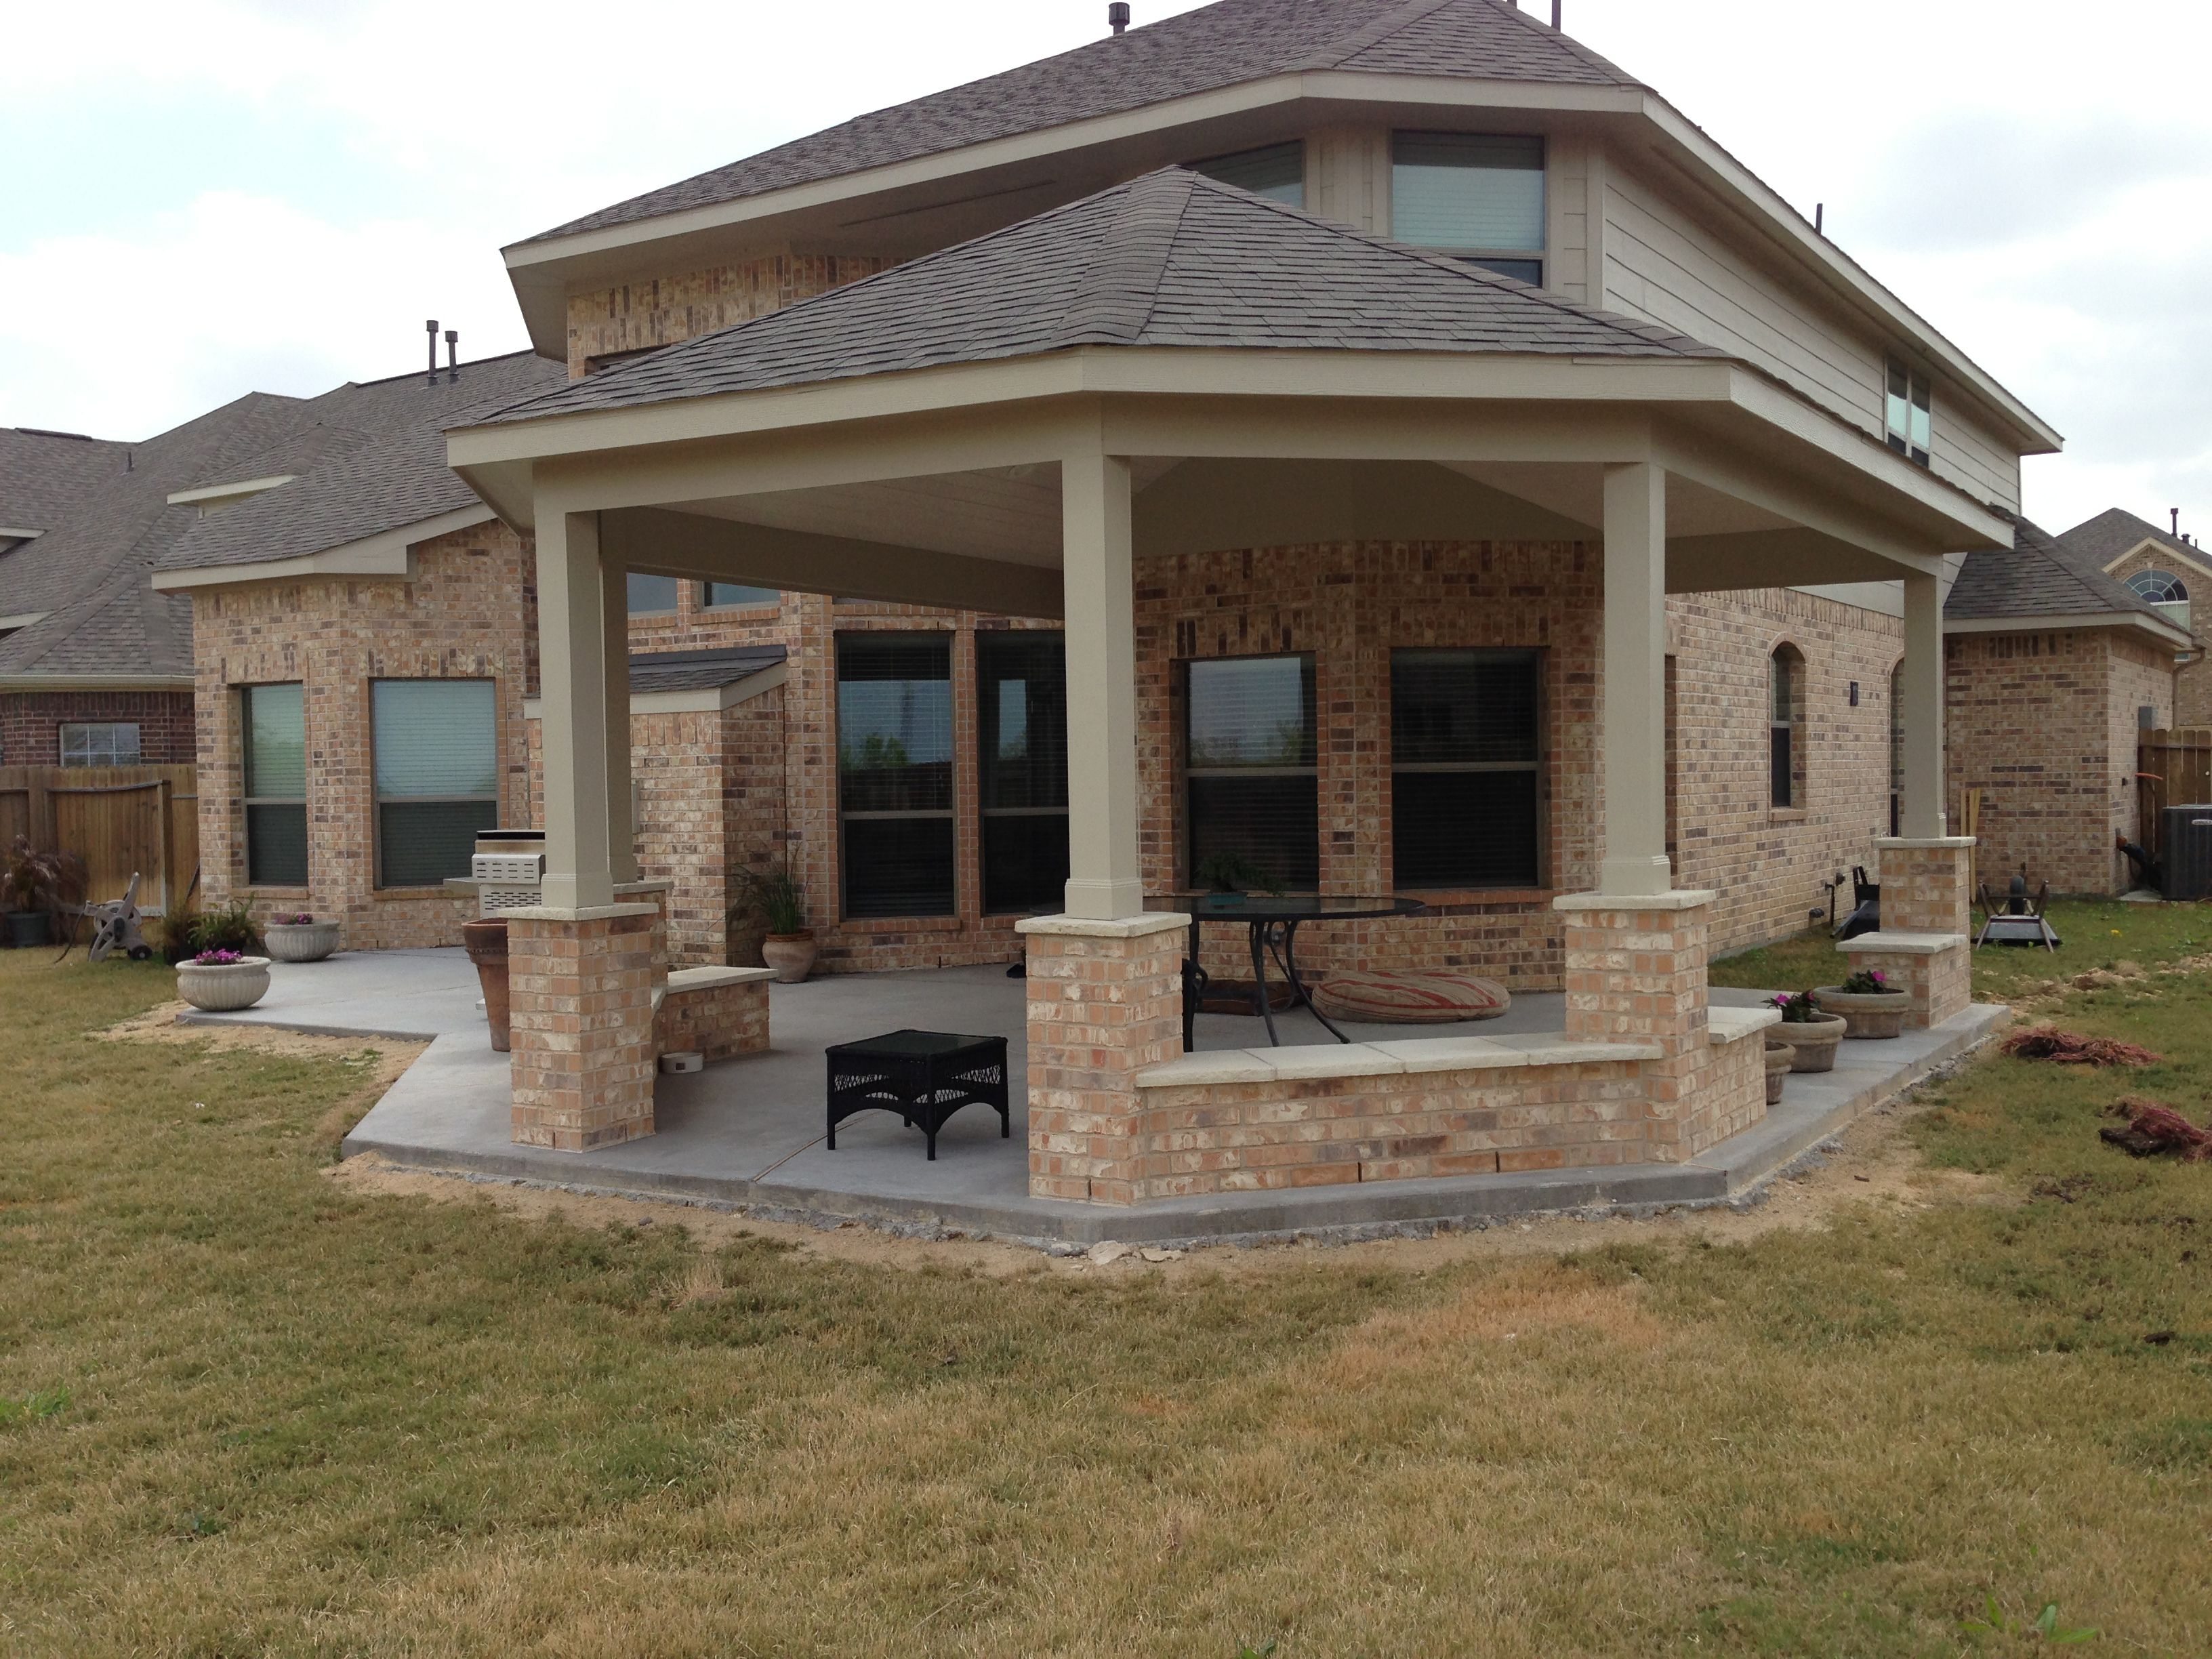 Here is a different view of the custom, hex shaped patio addition we built & designed for a client.  I like this one!